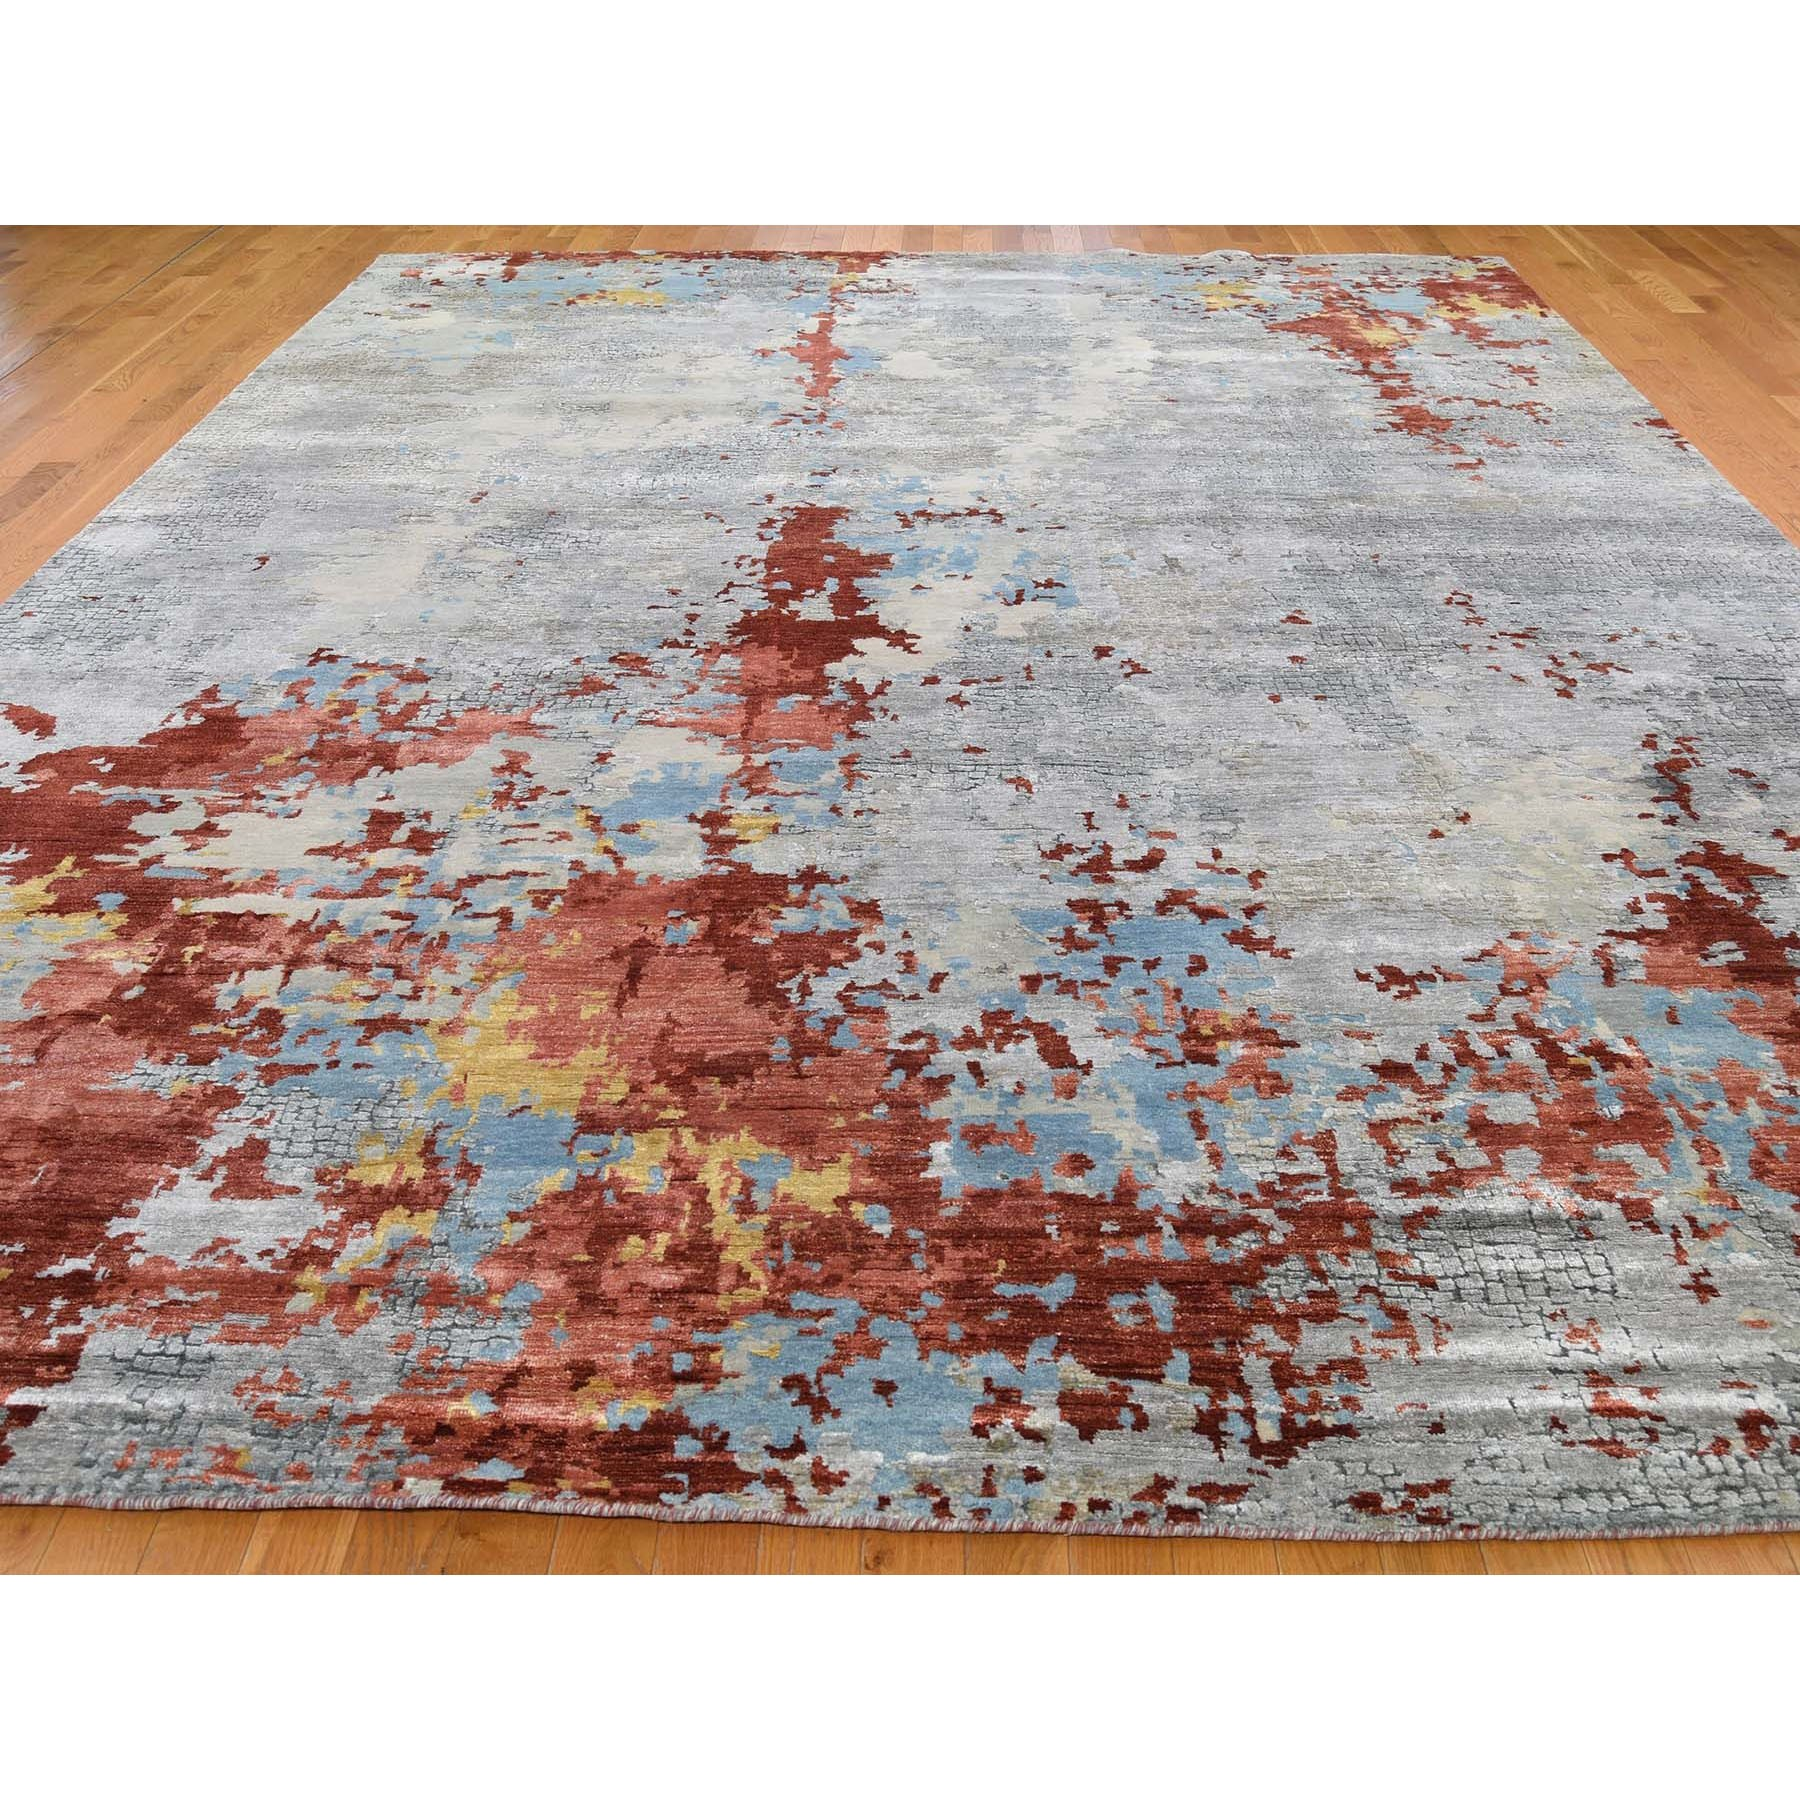 Modern-and-Contemporary-Hand-Knotted-Rug-244360